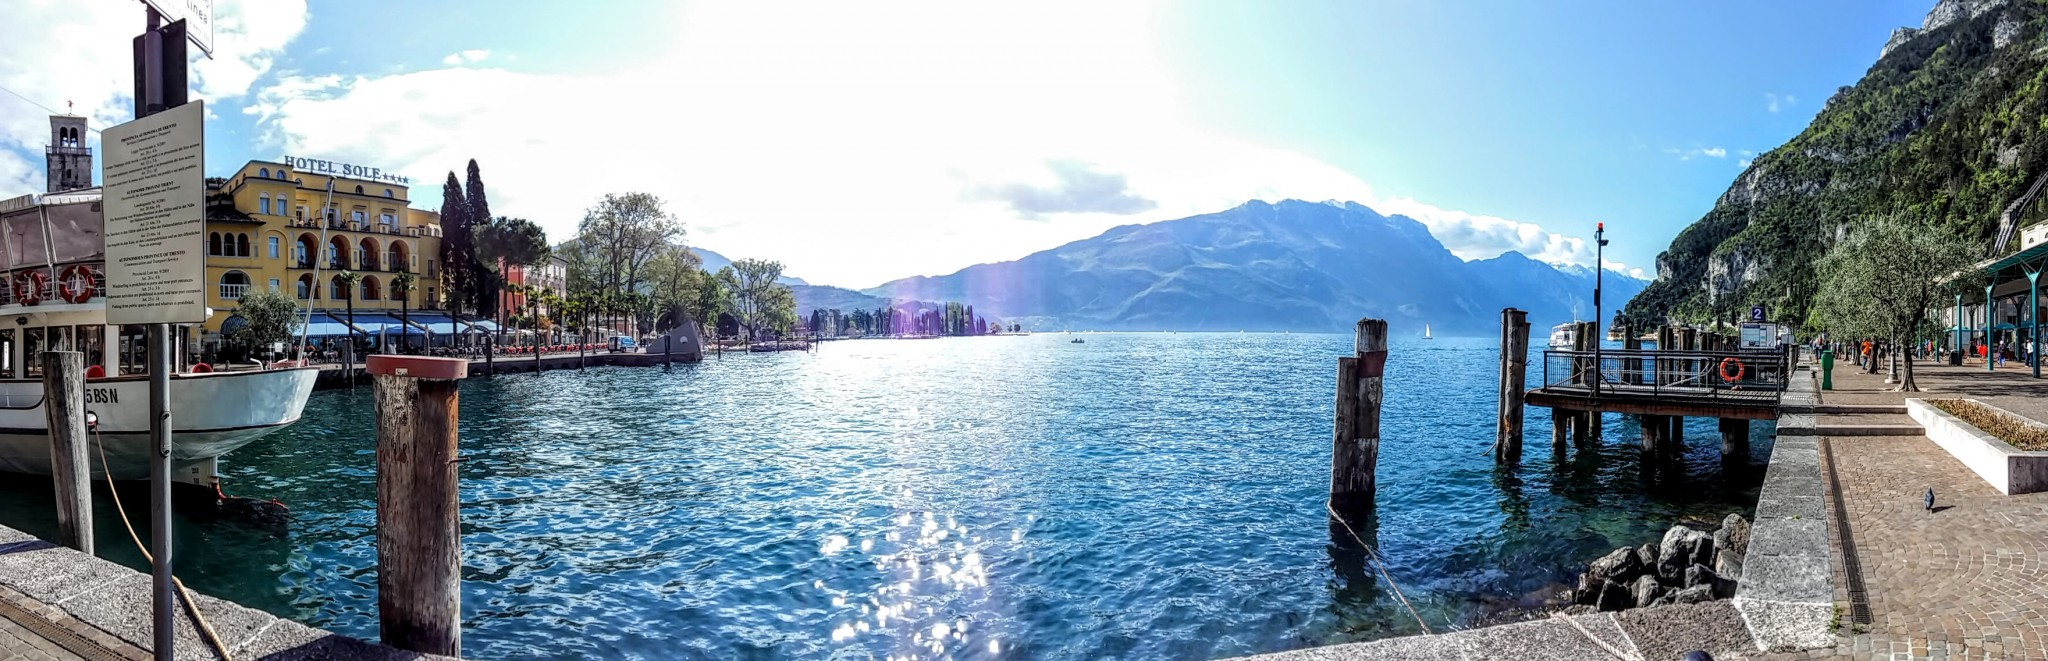 Bike ride around Garda Lake